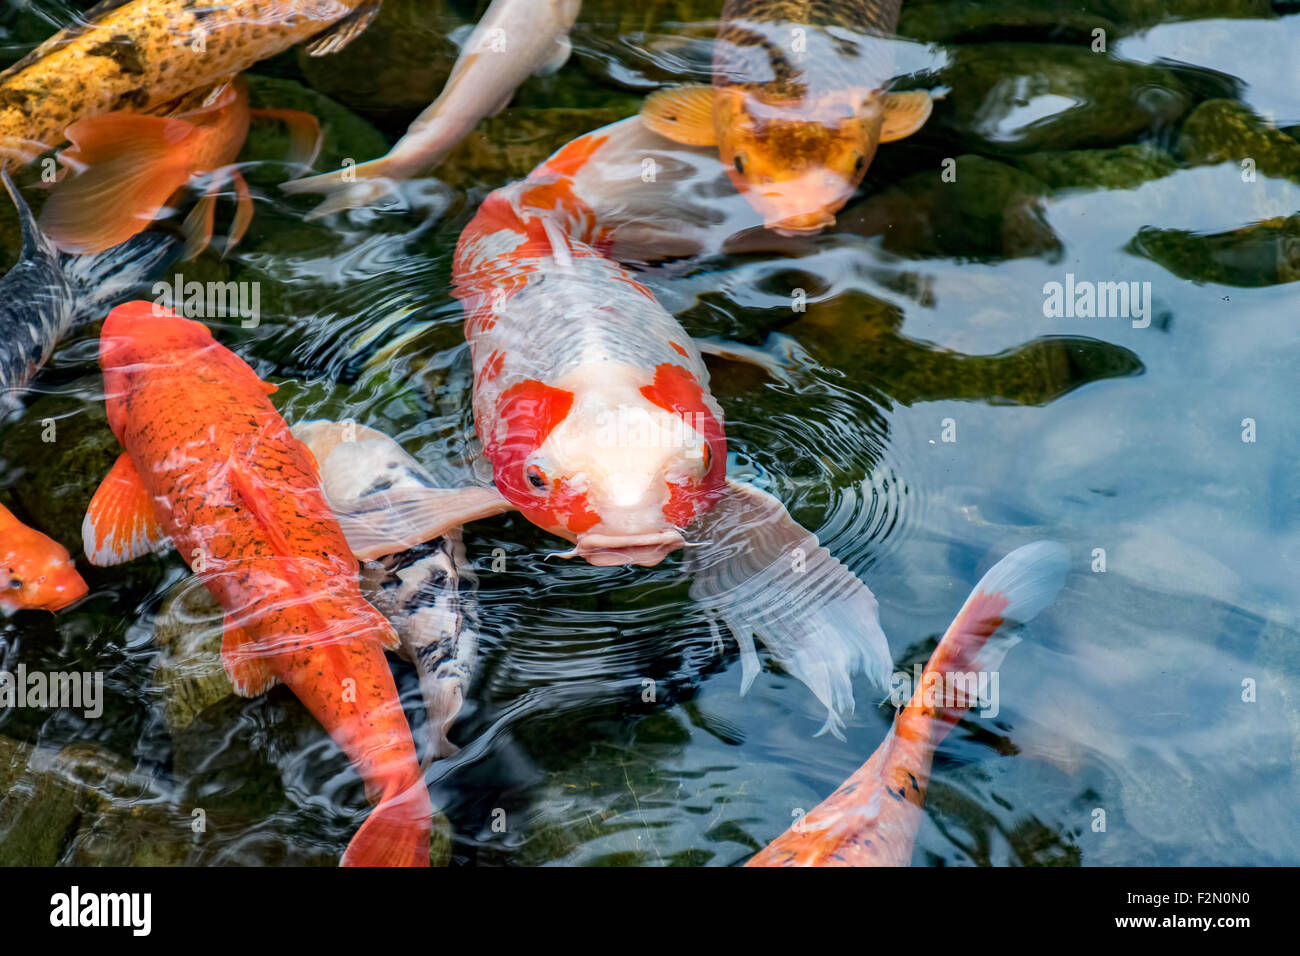 Koi carp fish in pond stock photo 87742732 alamy for Purchase koi fish